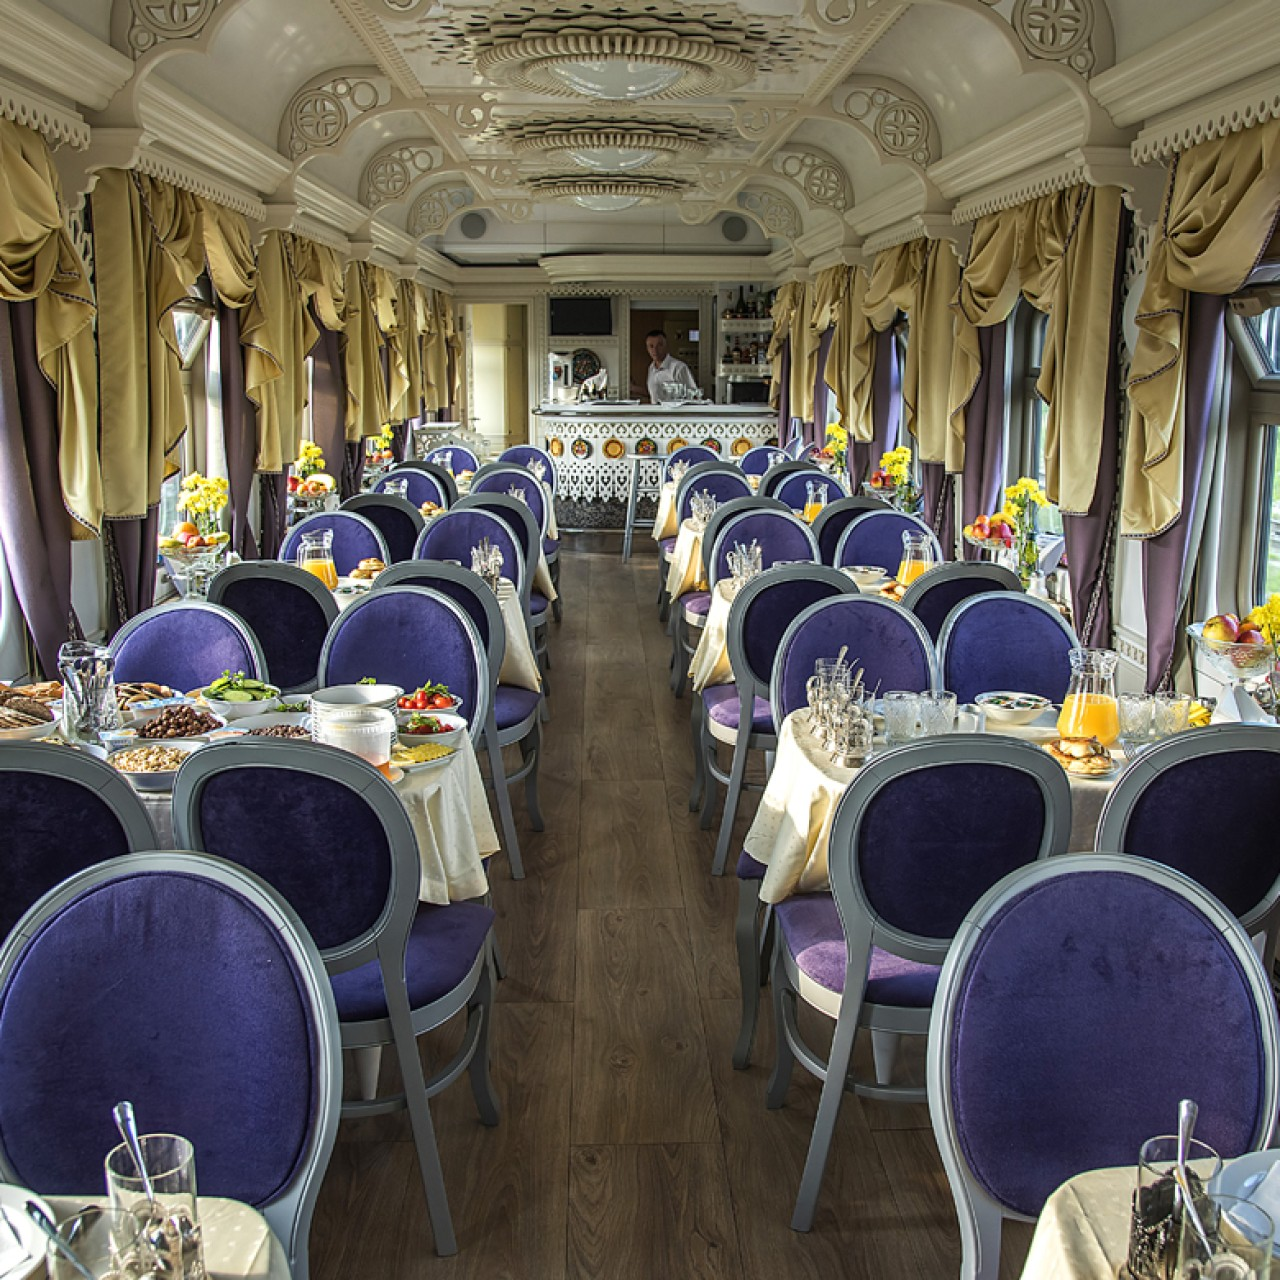 All aboard the Tsar's Gold luxury train from Mongolia to